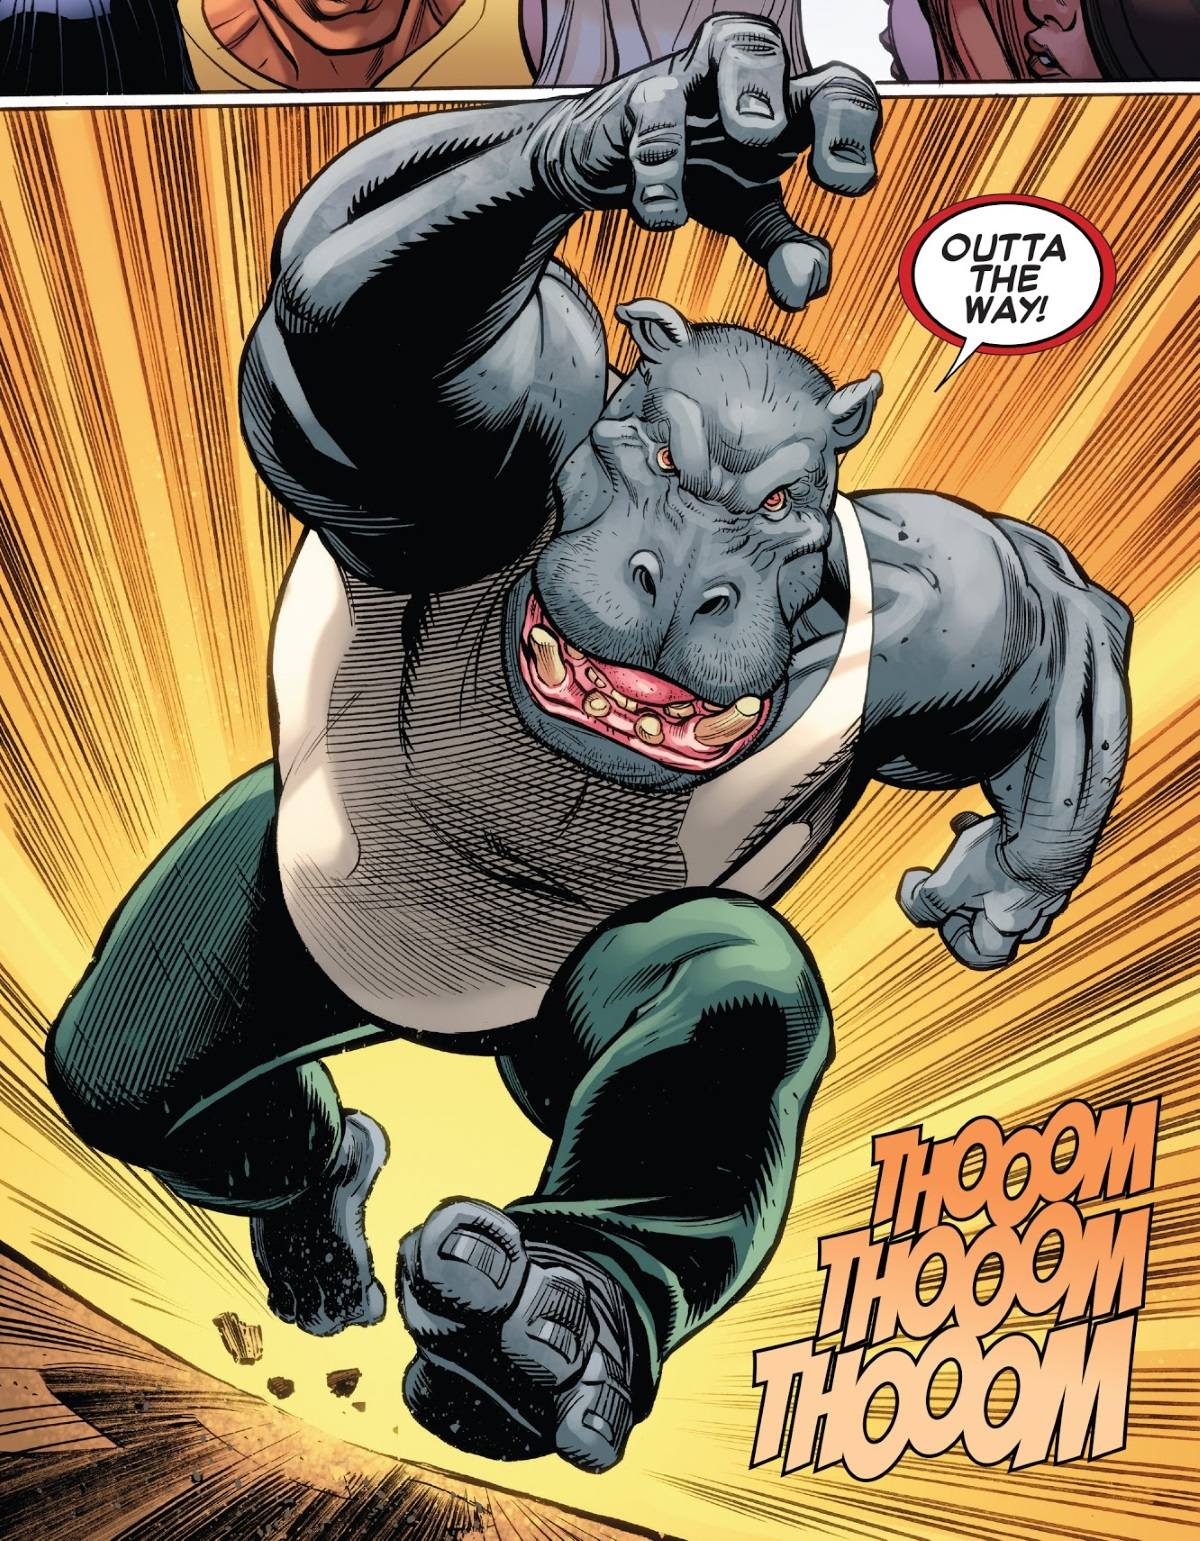 Hippo (Earth-616) from Ben Reilly Scarlet Spider Vol 1 14 0001.jpg